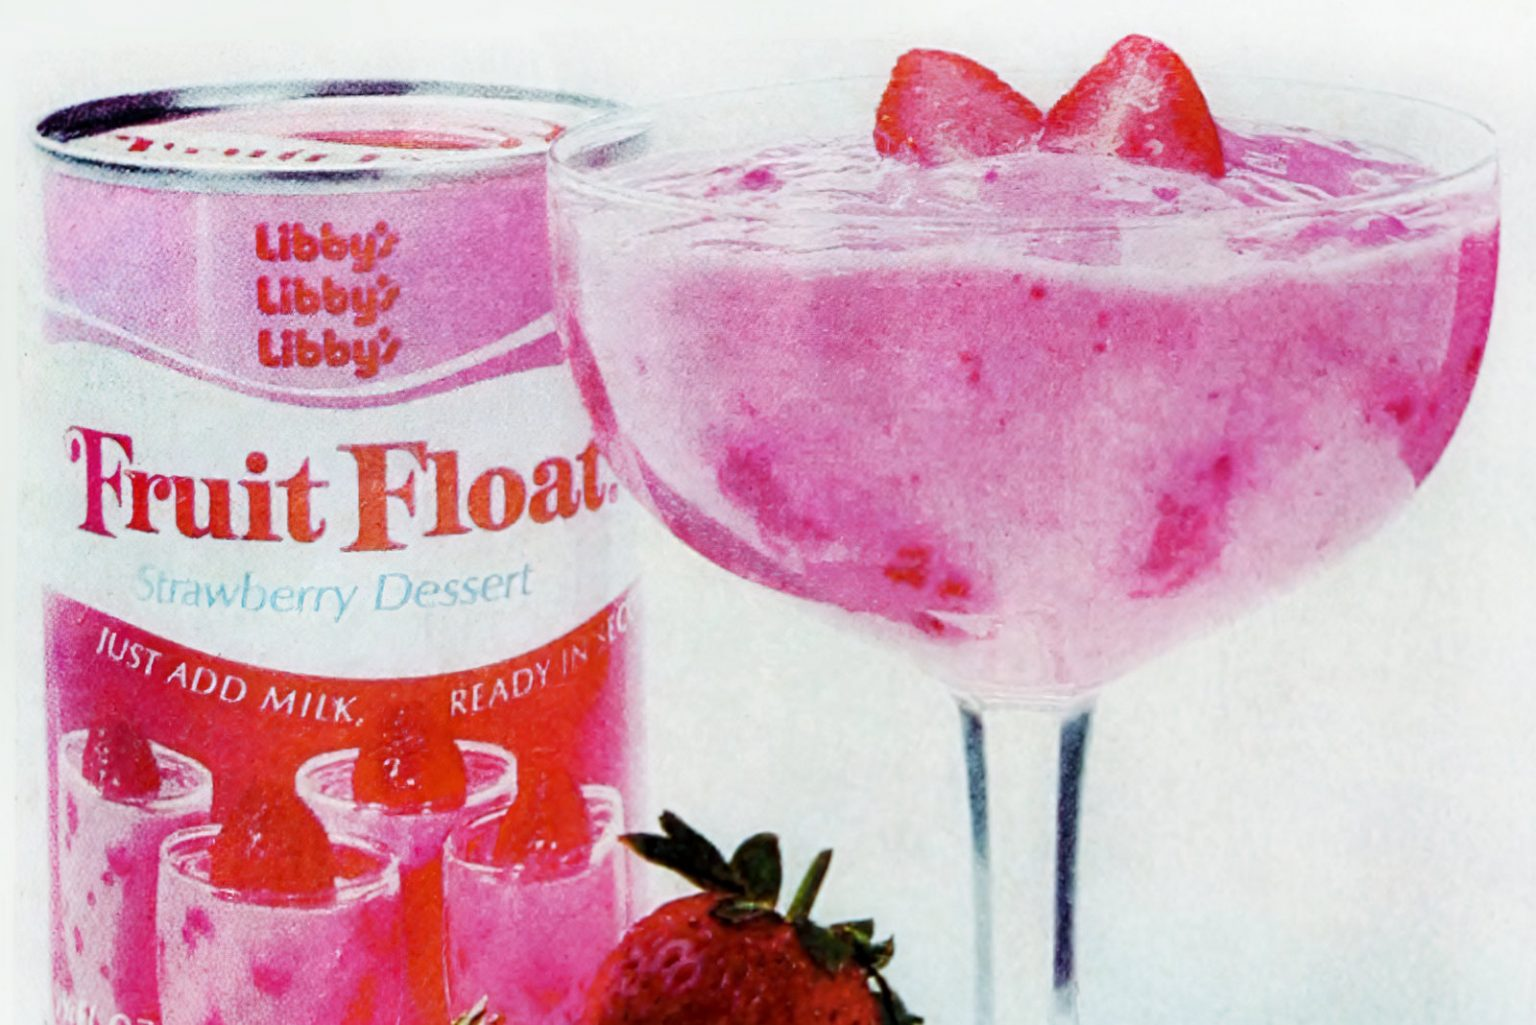 Libby's Fruit Float canned dessert mix from the 1970s